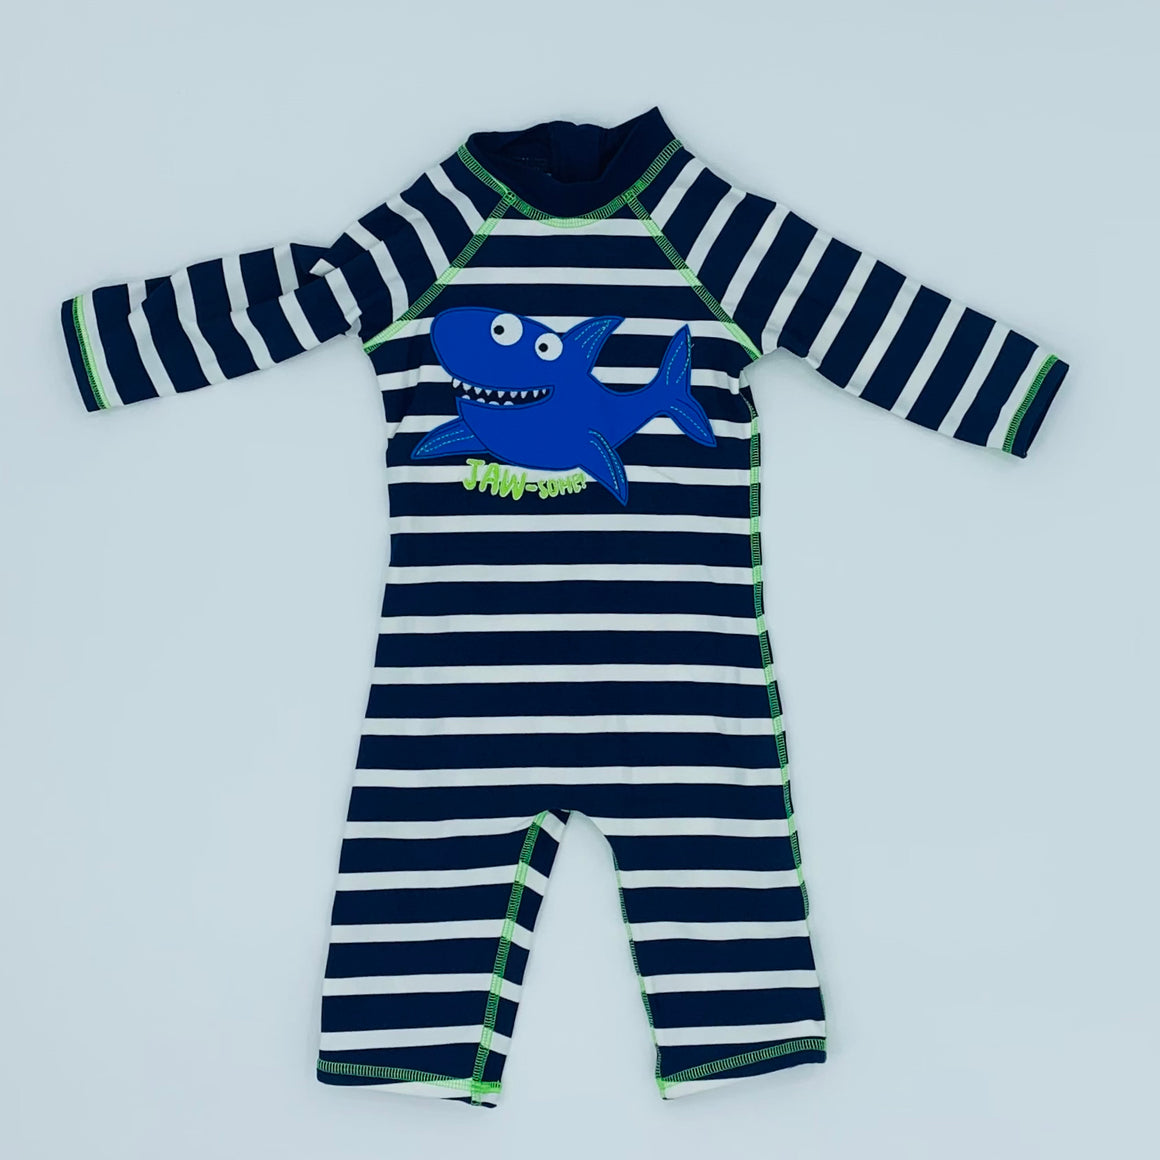 New Blue Zoo striped shark sunsuit size 18-24 months